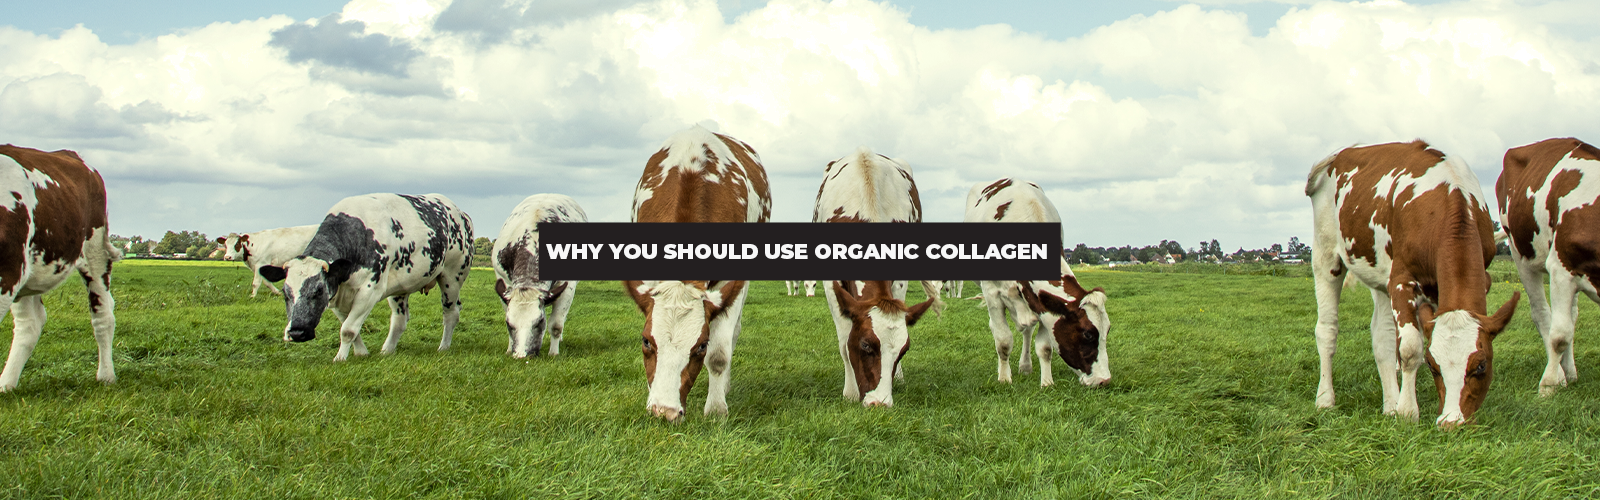 Why Should You Use Organic Collagen Powder?